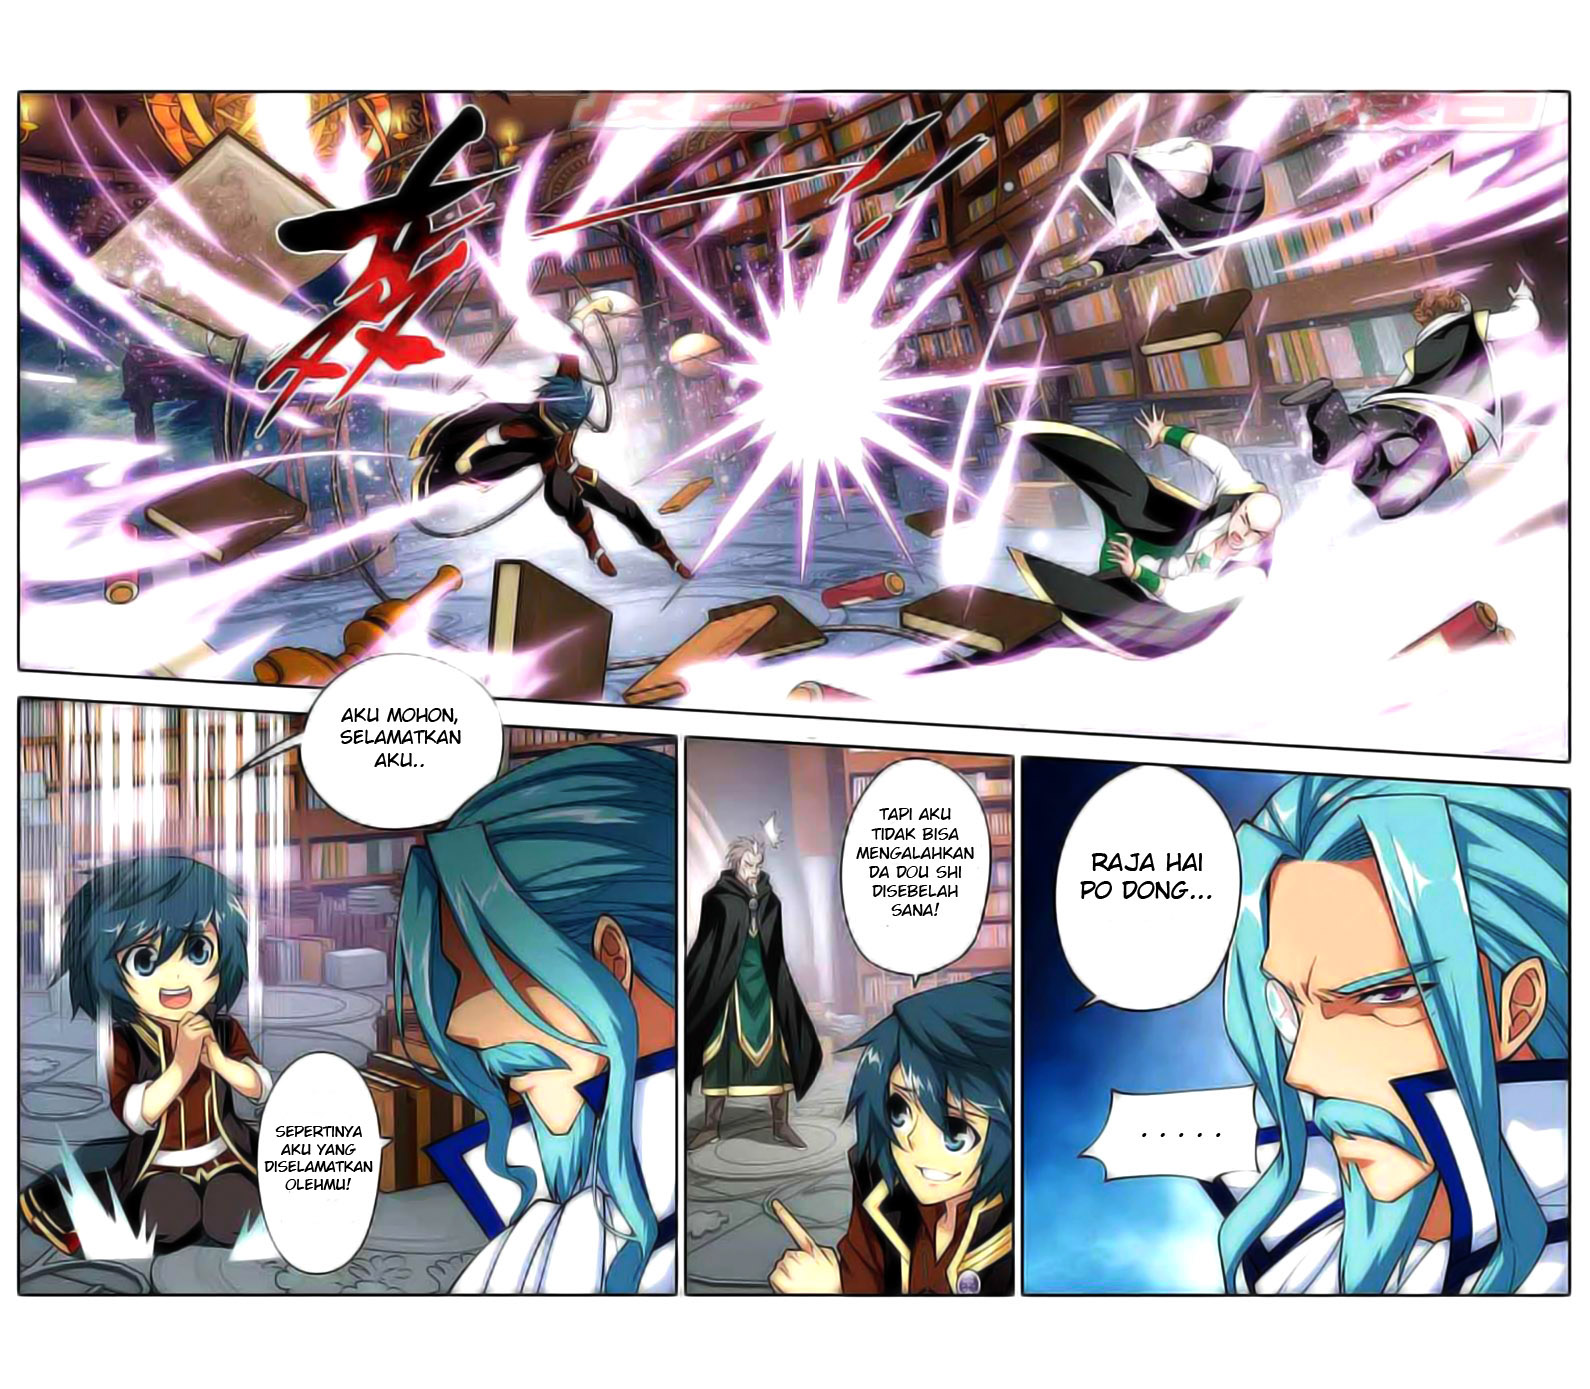 Dilarang COPAS - situs resmi www.mangacanblog.com - Komik battle through heaven 038 - chapter 38 39 Indonesia battle through heaven 038 - chapter 38 Terbaru 20|Baca Manga Komik Indonesia|Mangacan